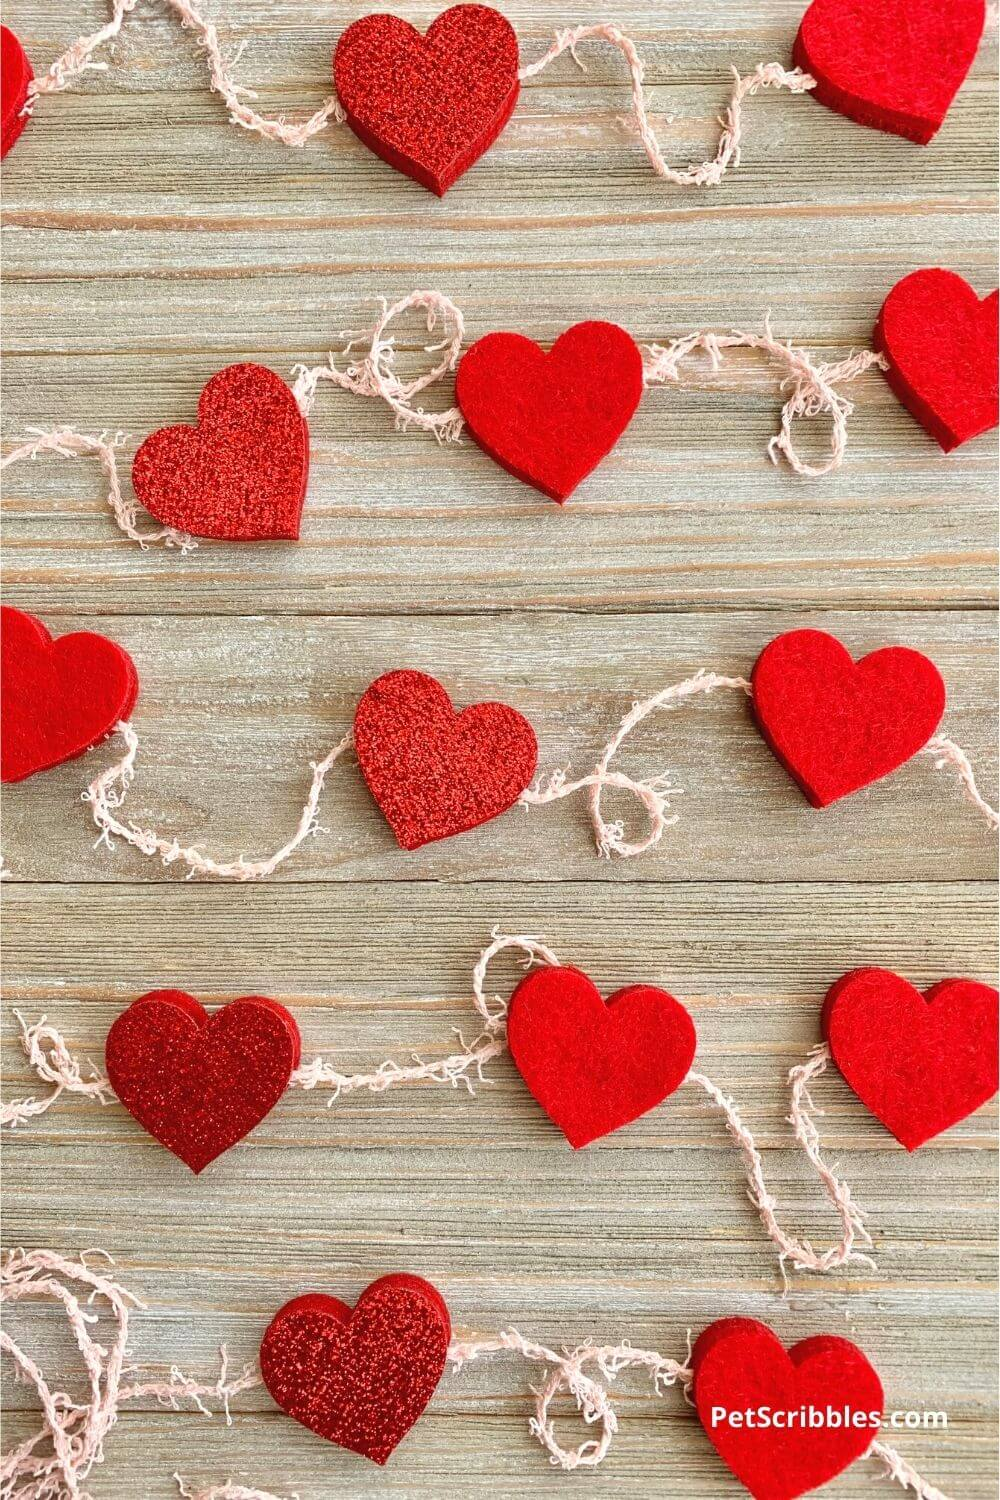 finished easy no-sew felt heart garland